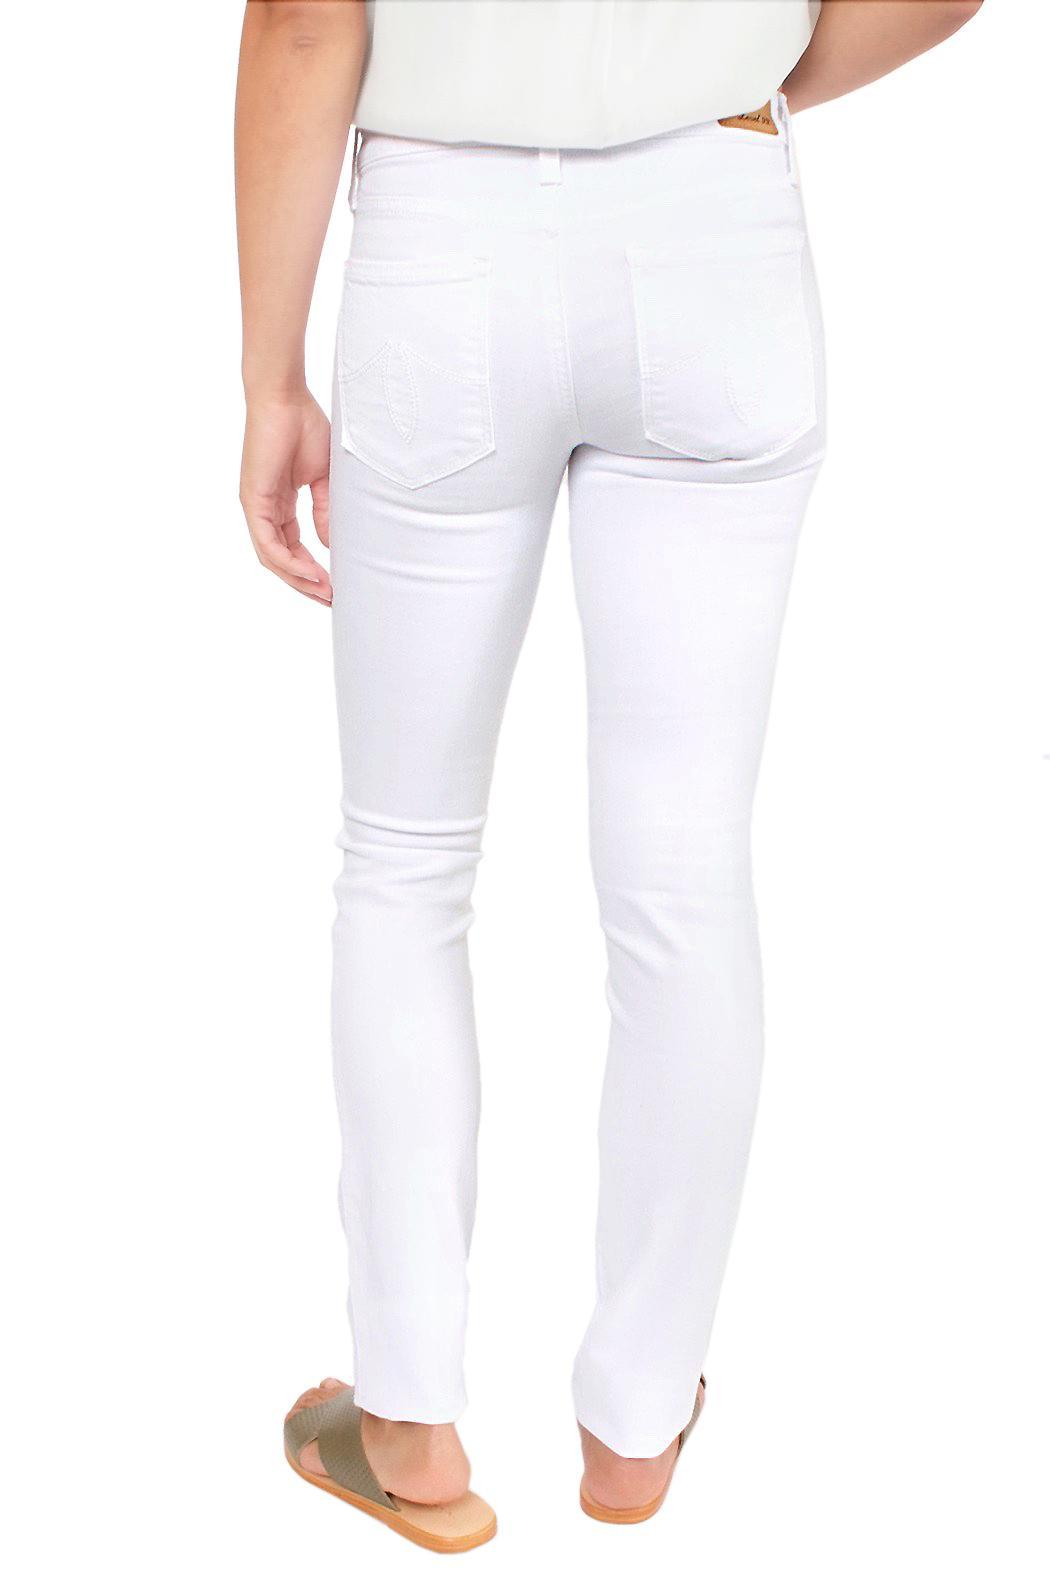 Level 99 White Skinny Jeans - Side Cropped Image